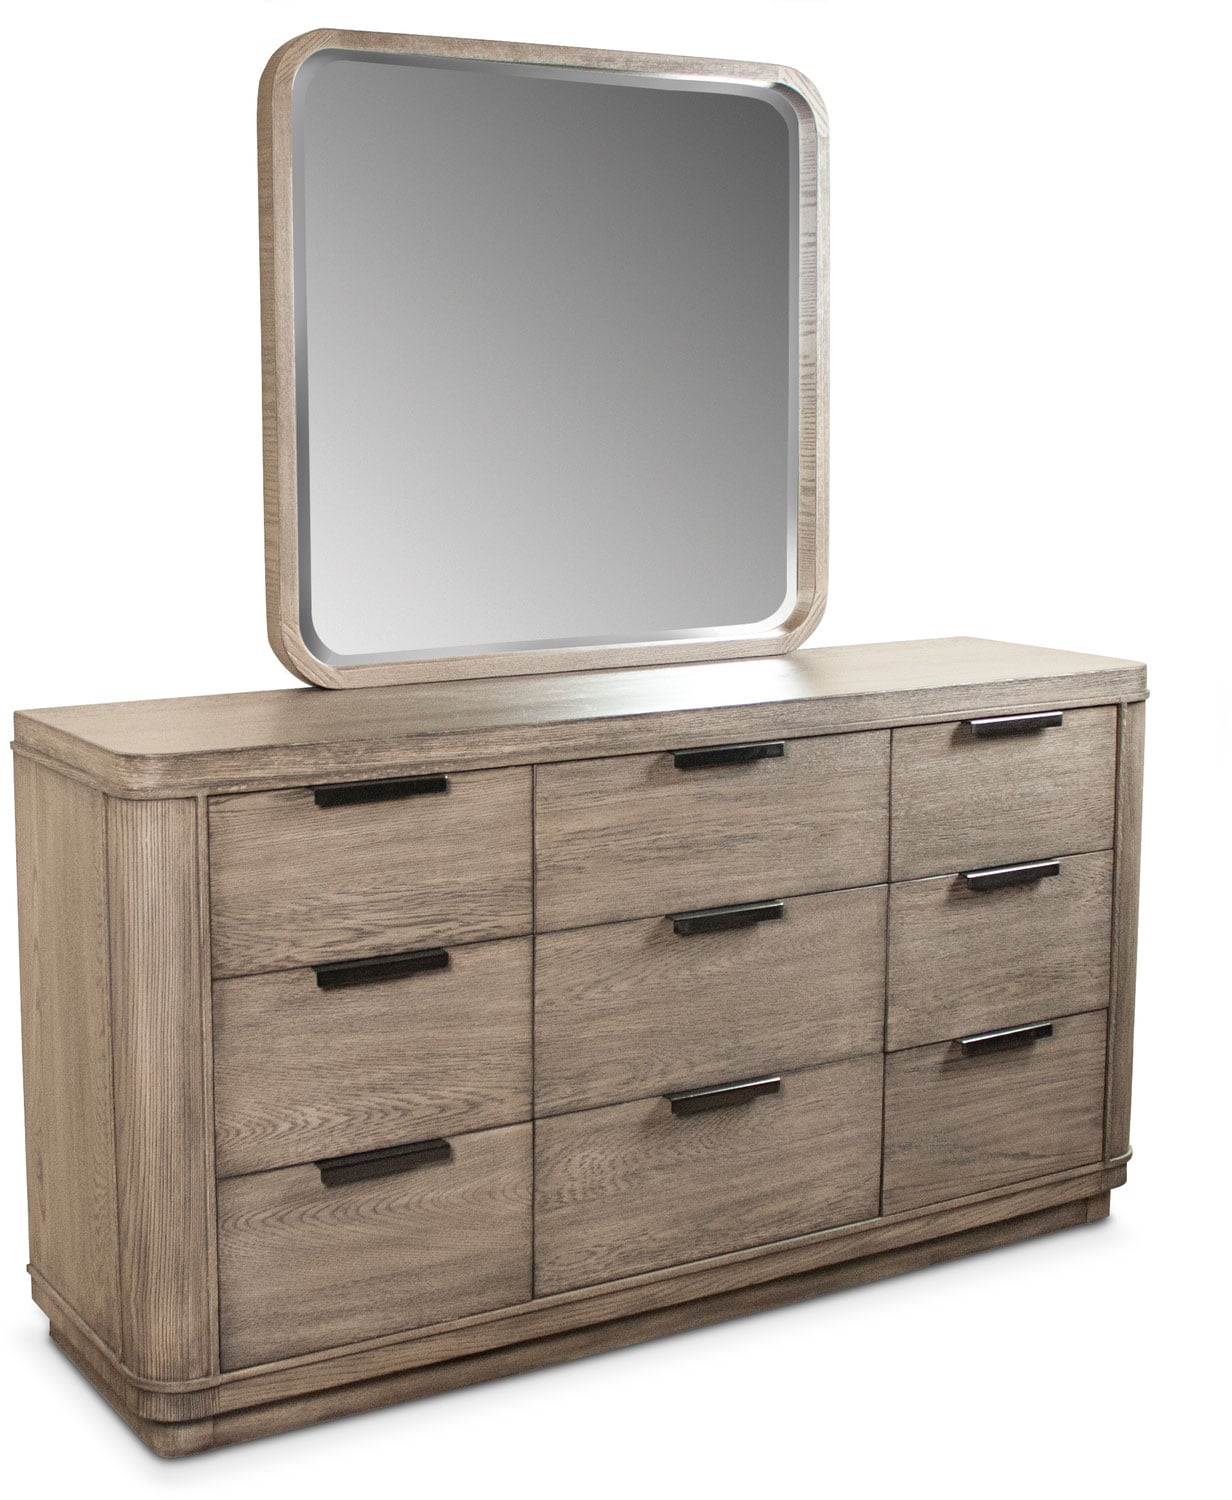 Bedroom Furniture - Malibu Dresser and Mirror - Gray